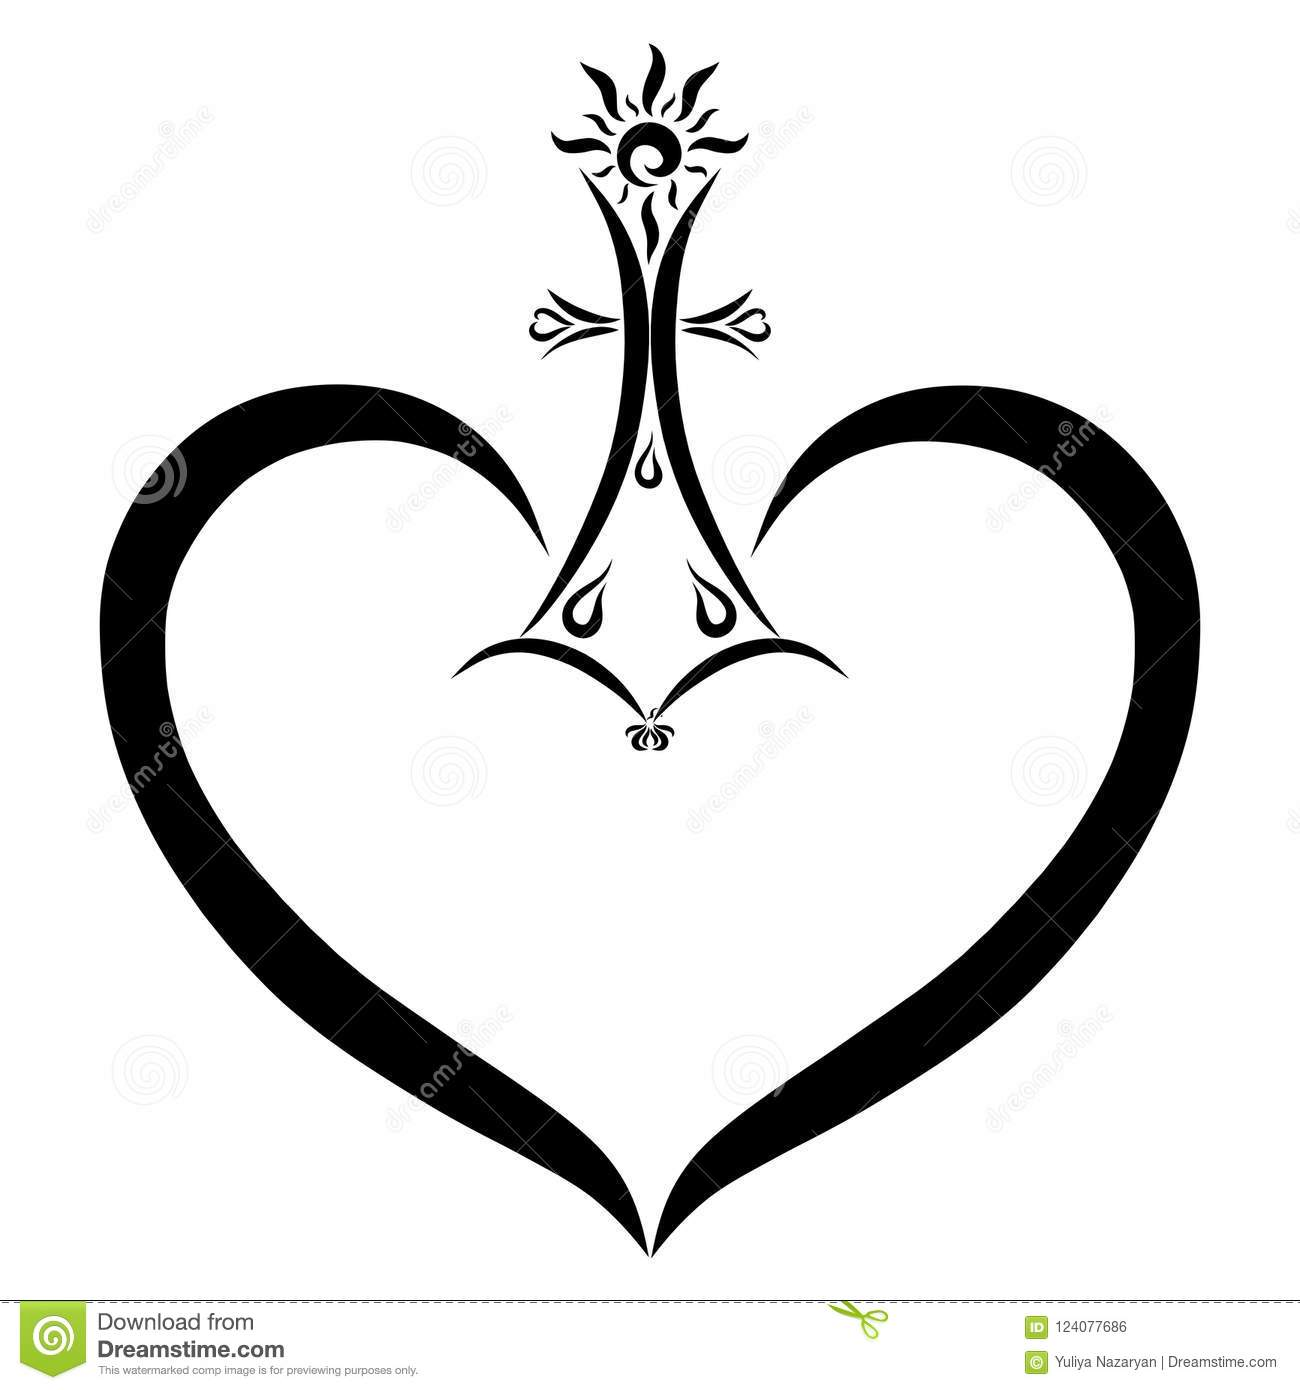 a cross with a shining sun and a flying bird above the heart stock